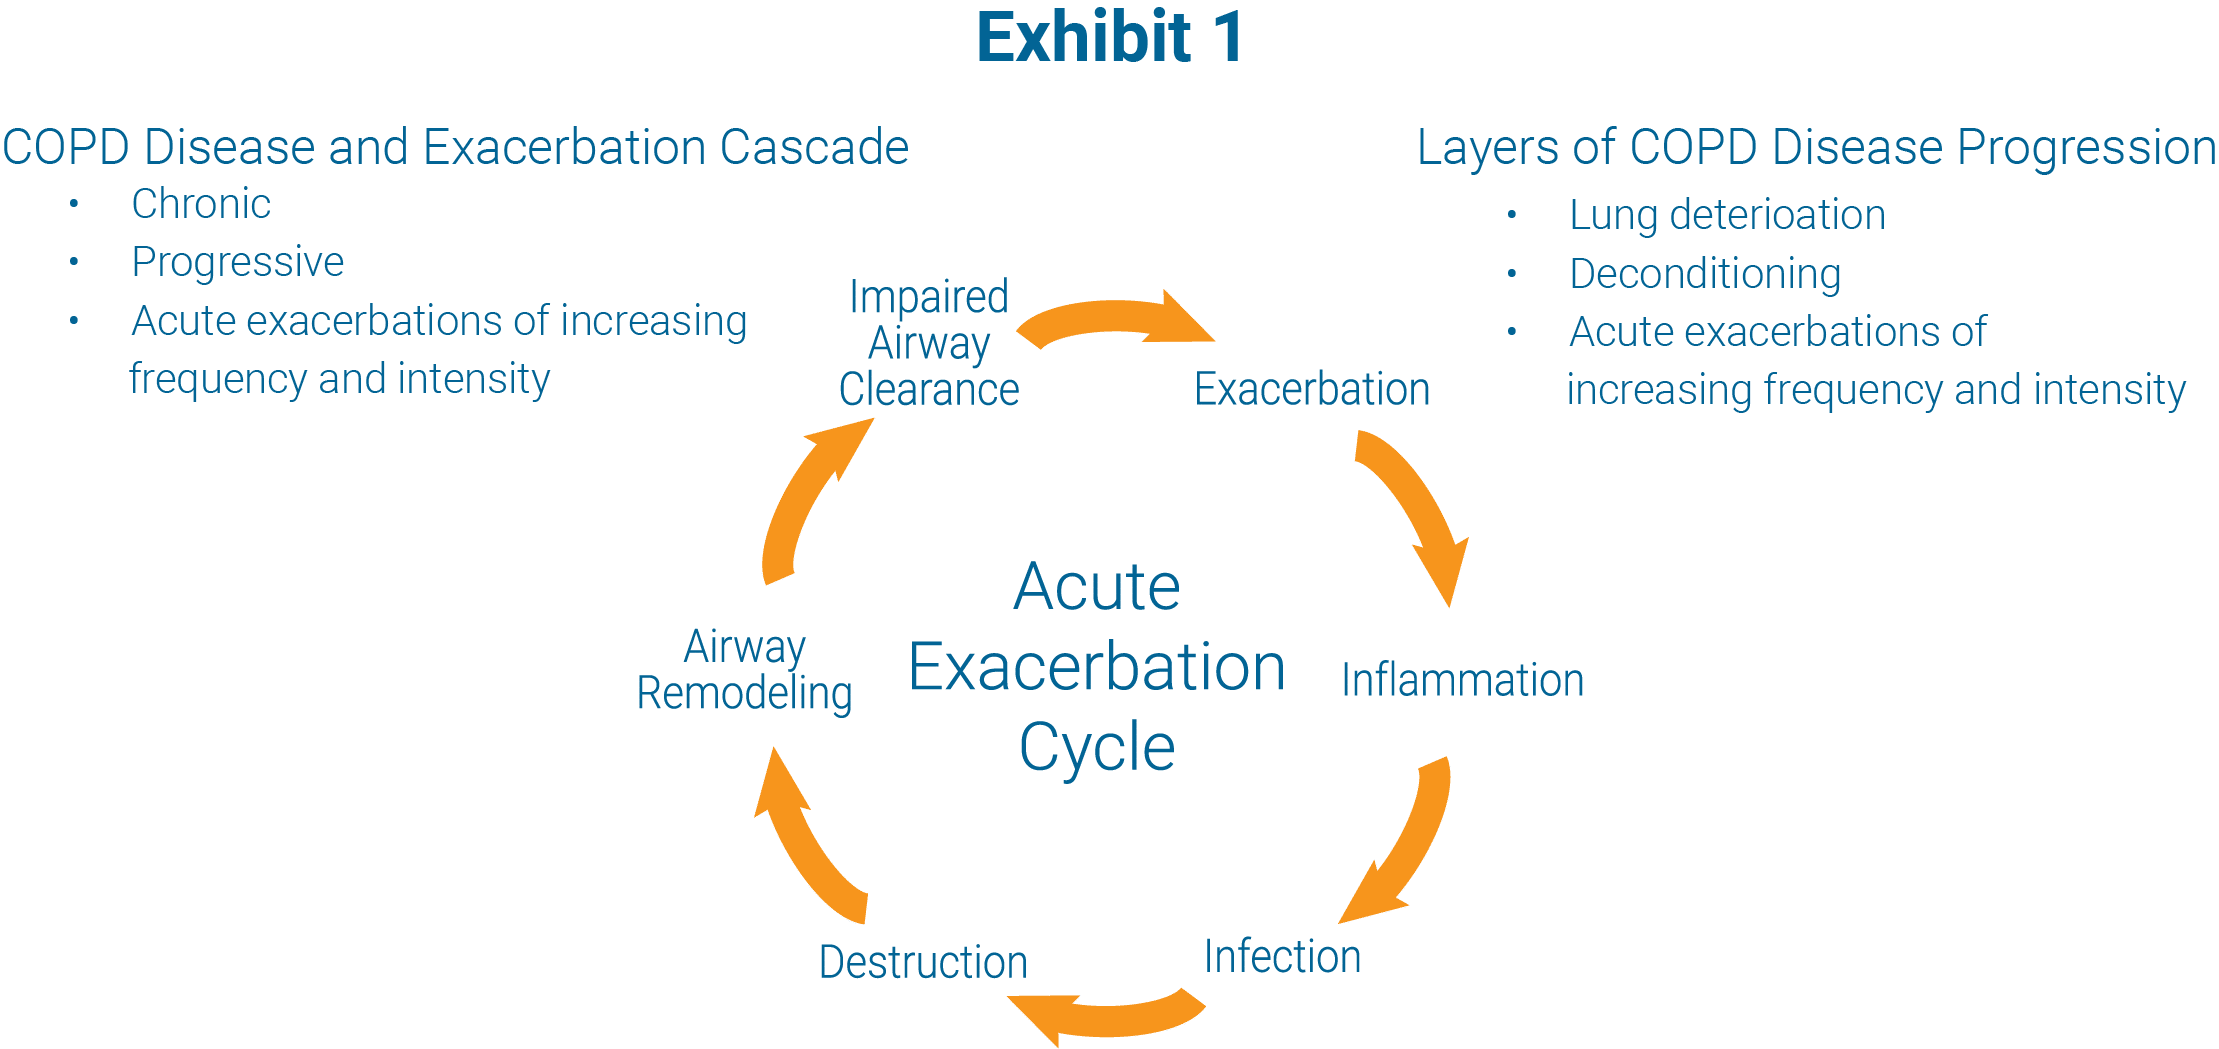 exhibit 1, COPD disease and exacerbation cascade, chronic, progressive, acute excerbations, layers of COPD disease progression